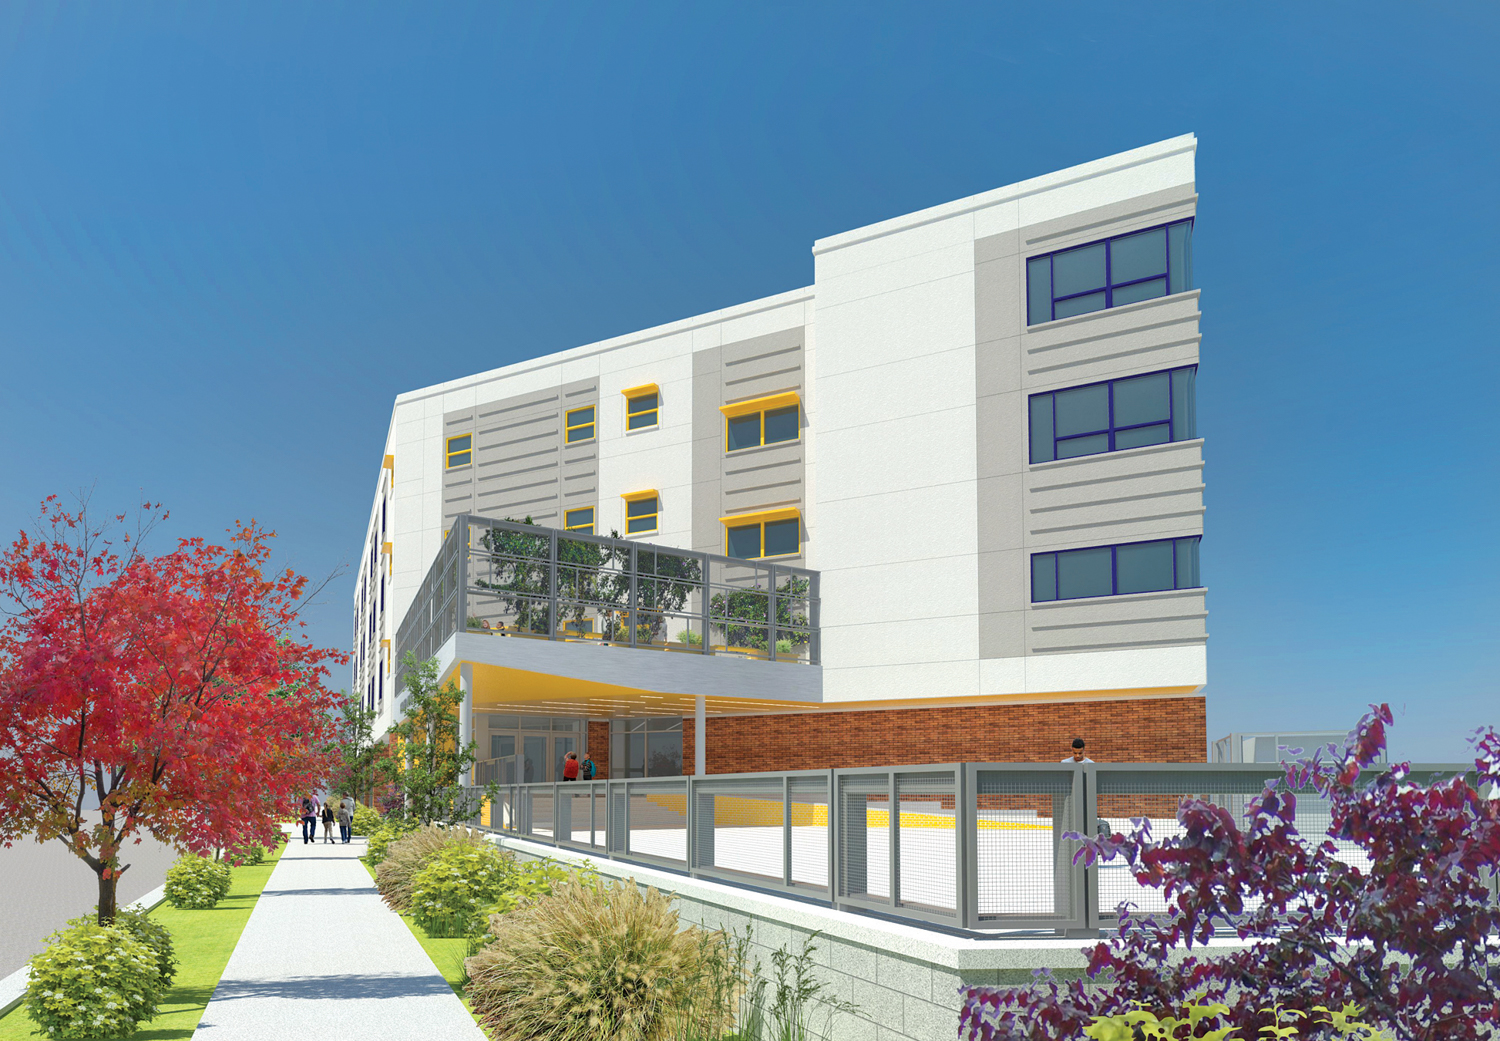 BelovED Middle School, rendering courtesy of Urbahn Architects